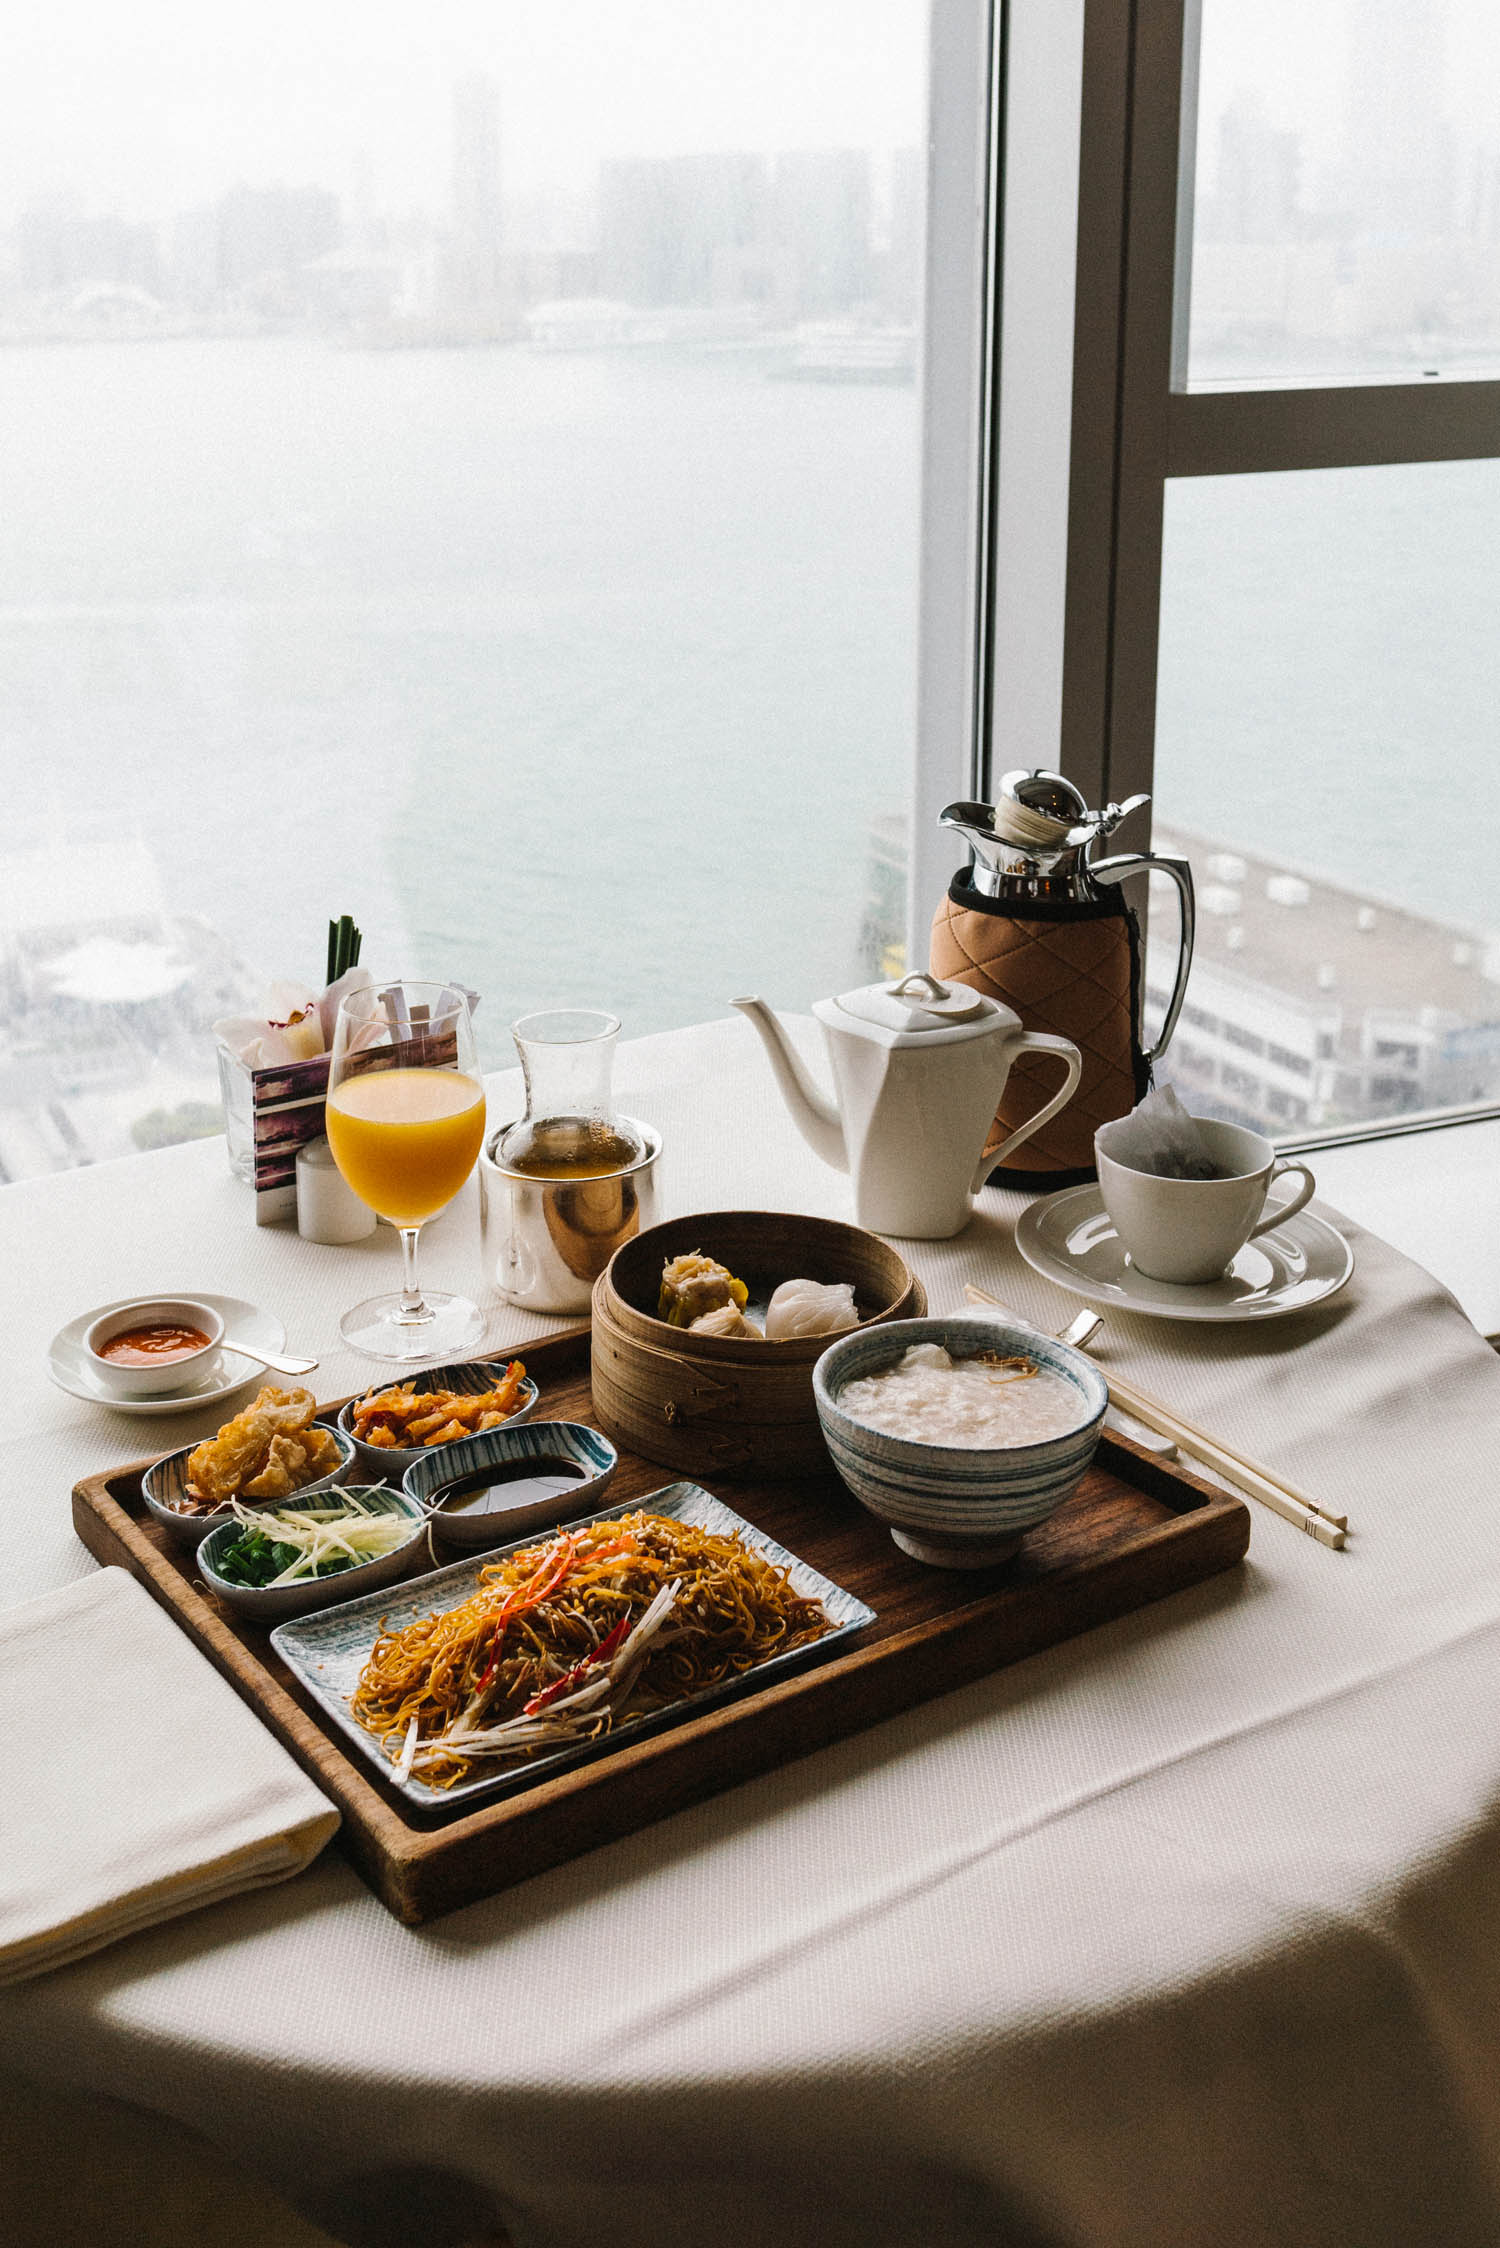 Chinese breakfast of congee, dimsum, and stir-fried noodles for in-room dining